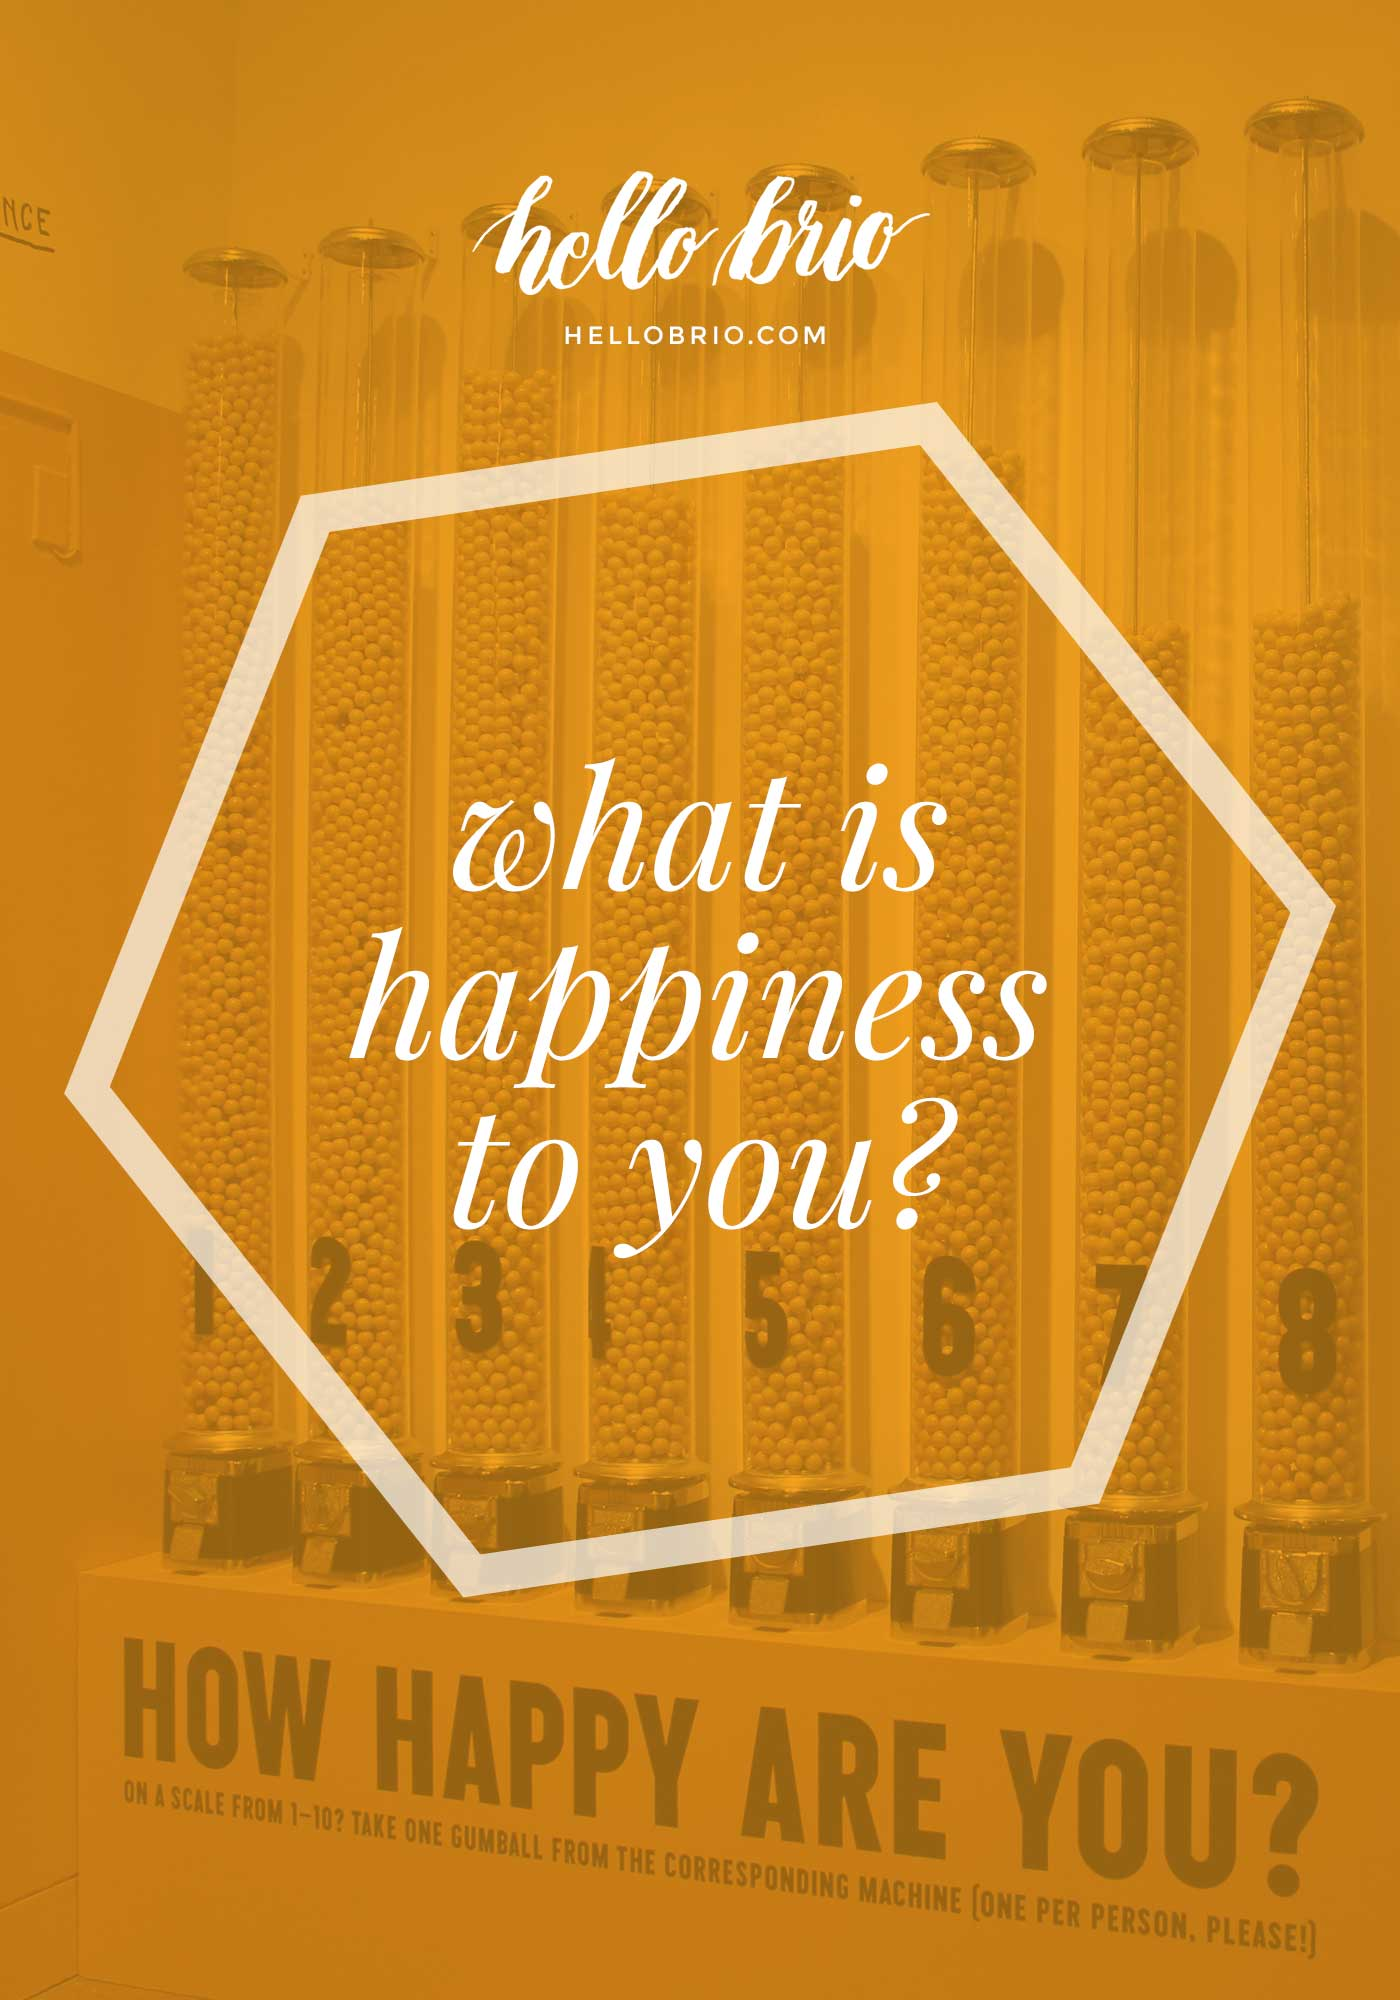 What is happiness to you?